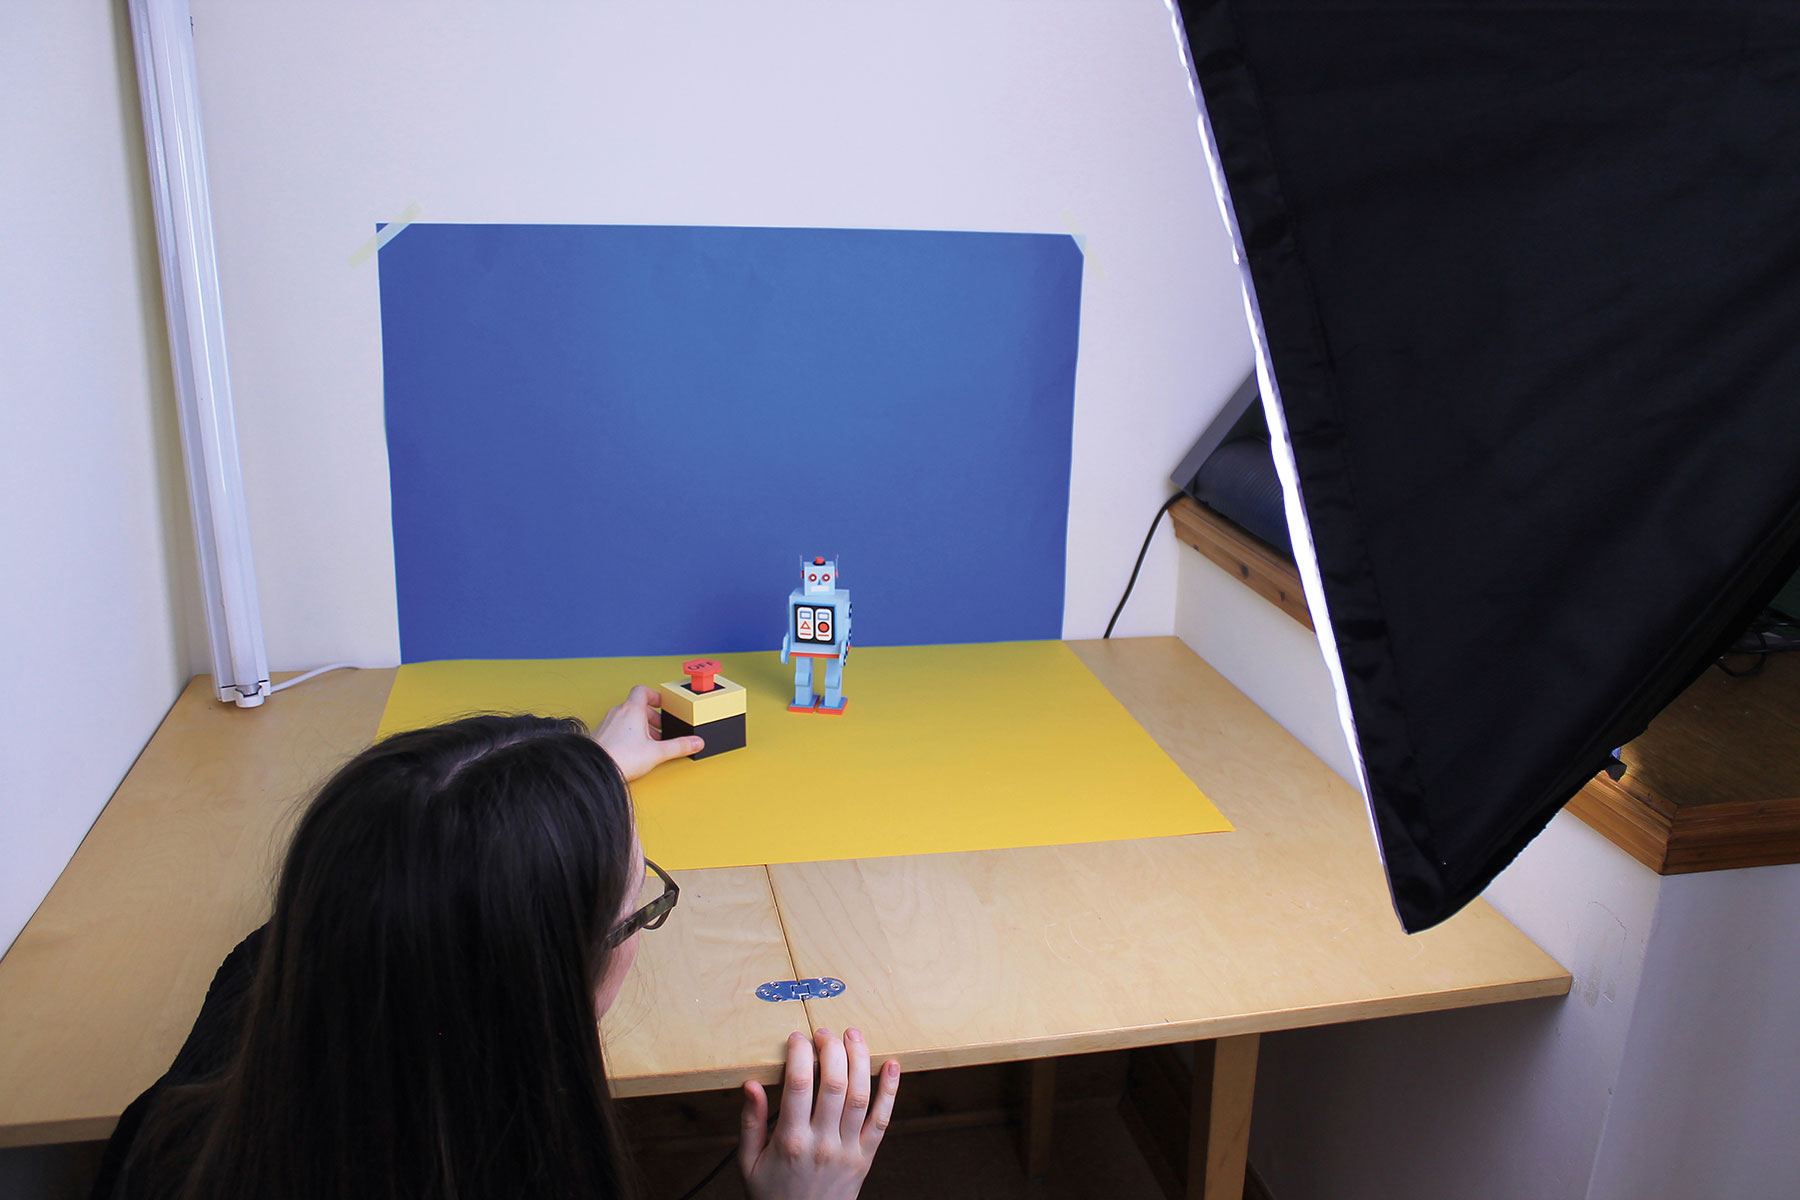 Robot model being photographed